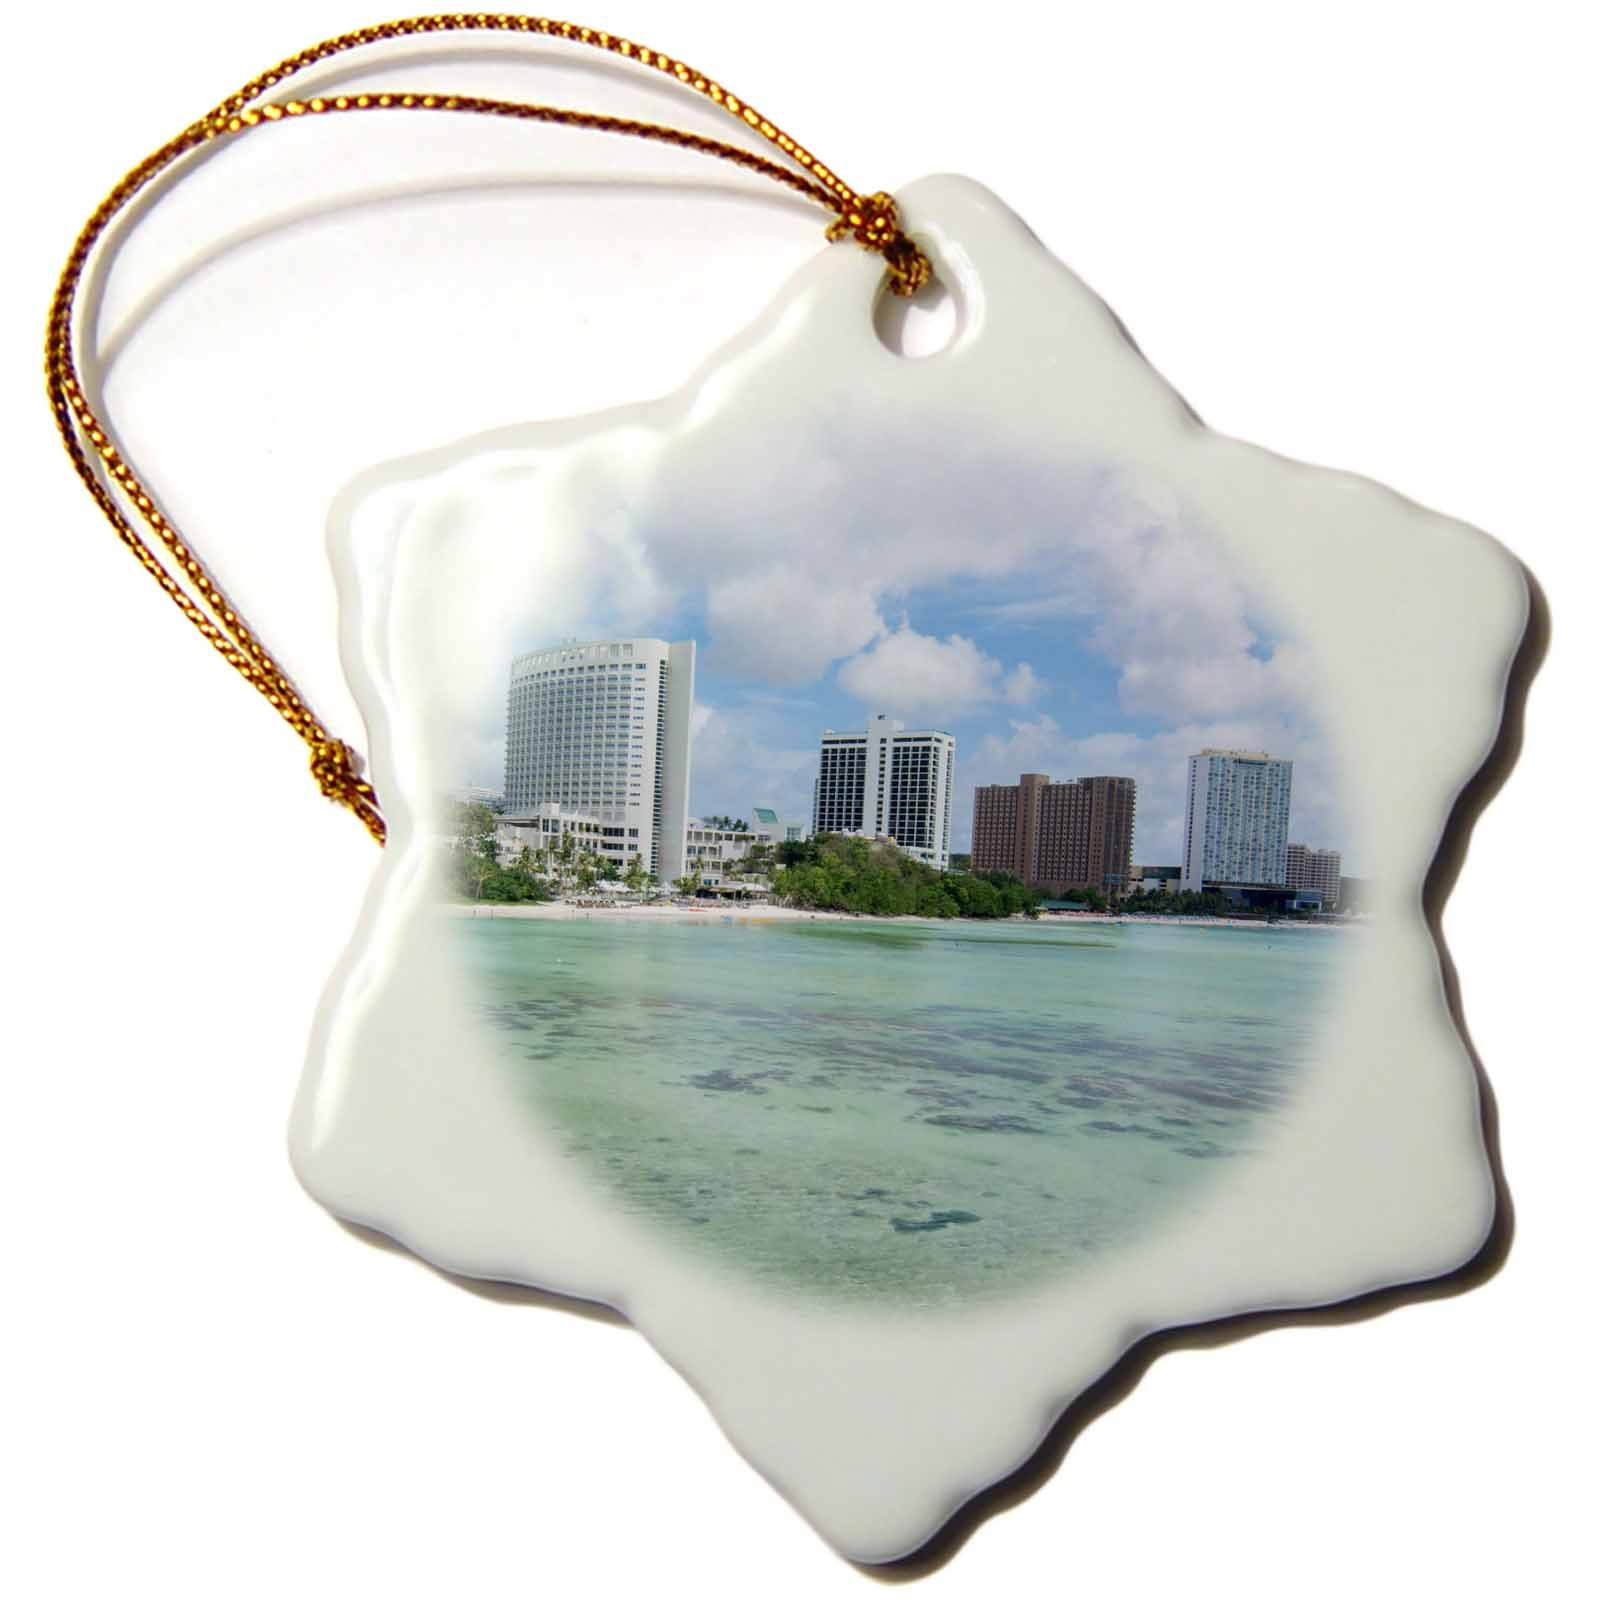 3dRose Danita Delimont - Cities - Guam Territory. Hotels line beach with clear tropical waters. - 3 inch Snowflake Porcelain Ornament (orn_278126_1)